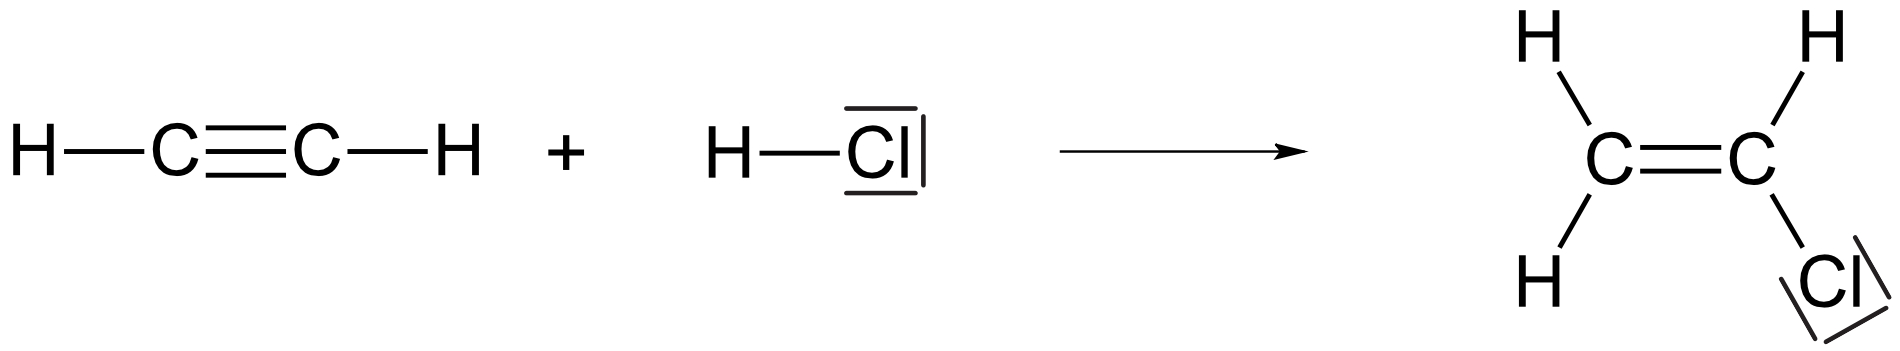 Addition von Chlorwasserstoff an Ethin